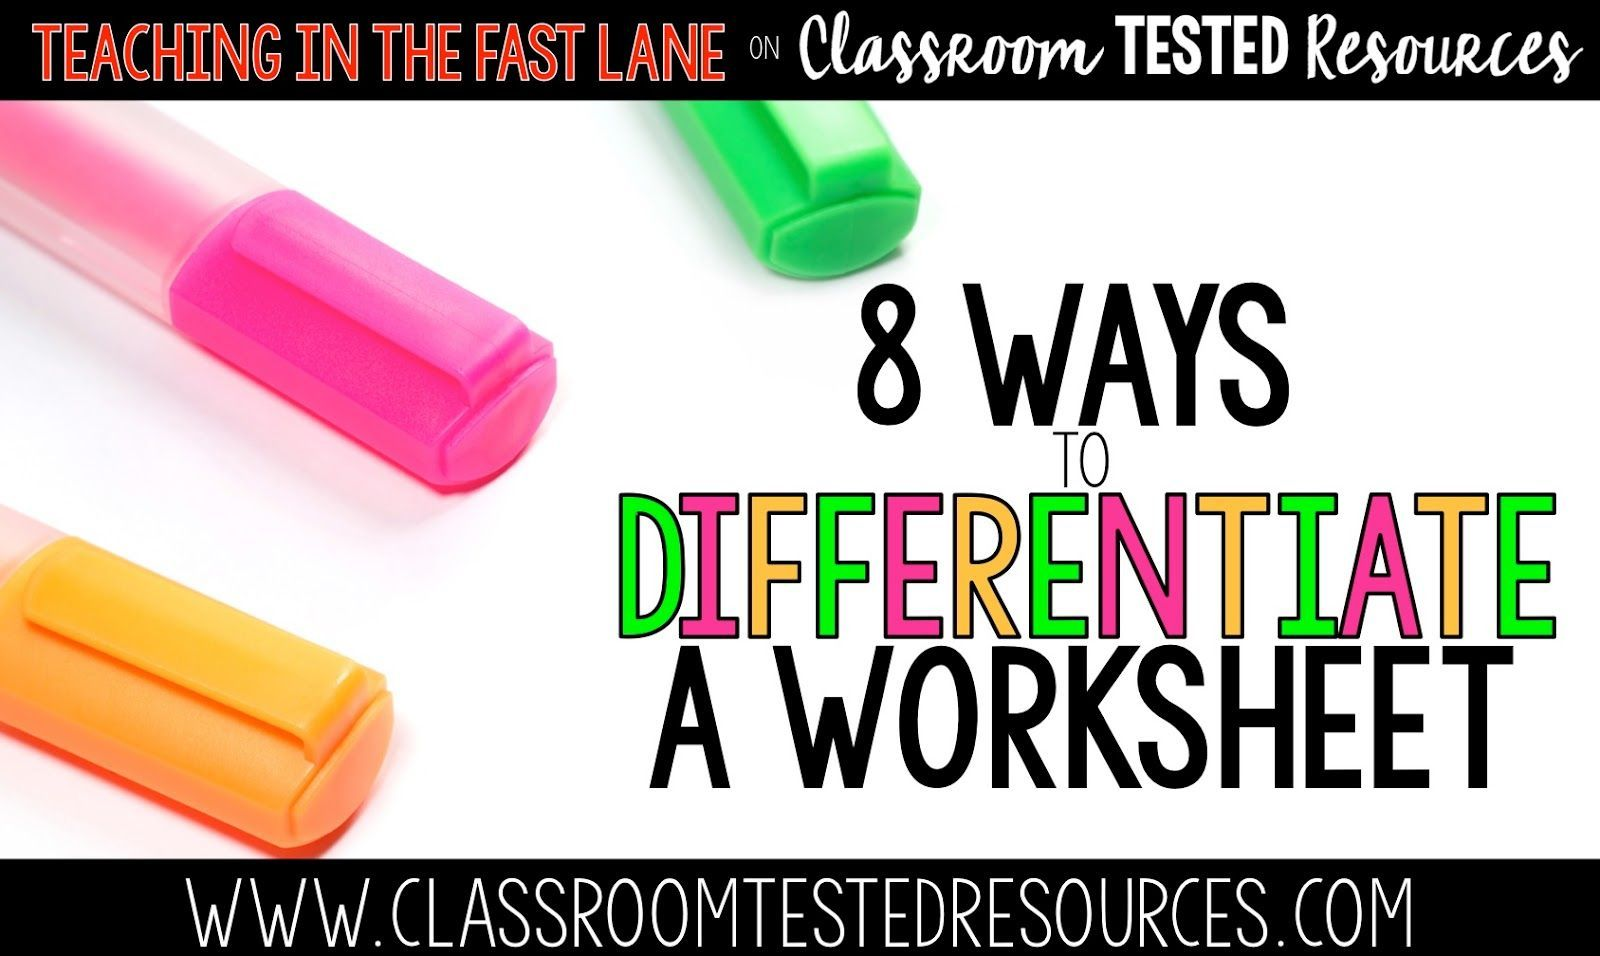 8 Ways To Differentiate A Worksheet With Images